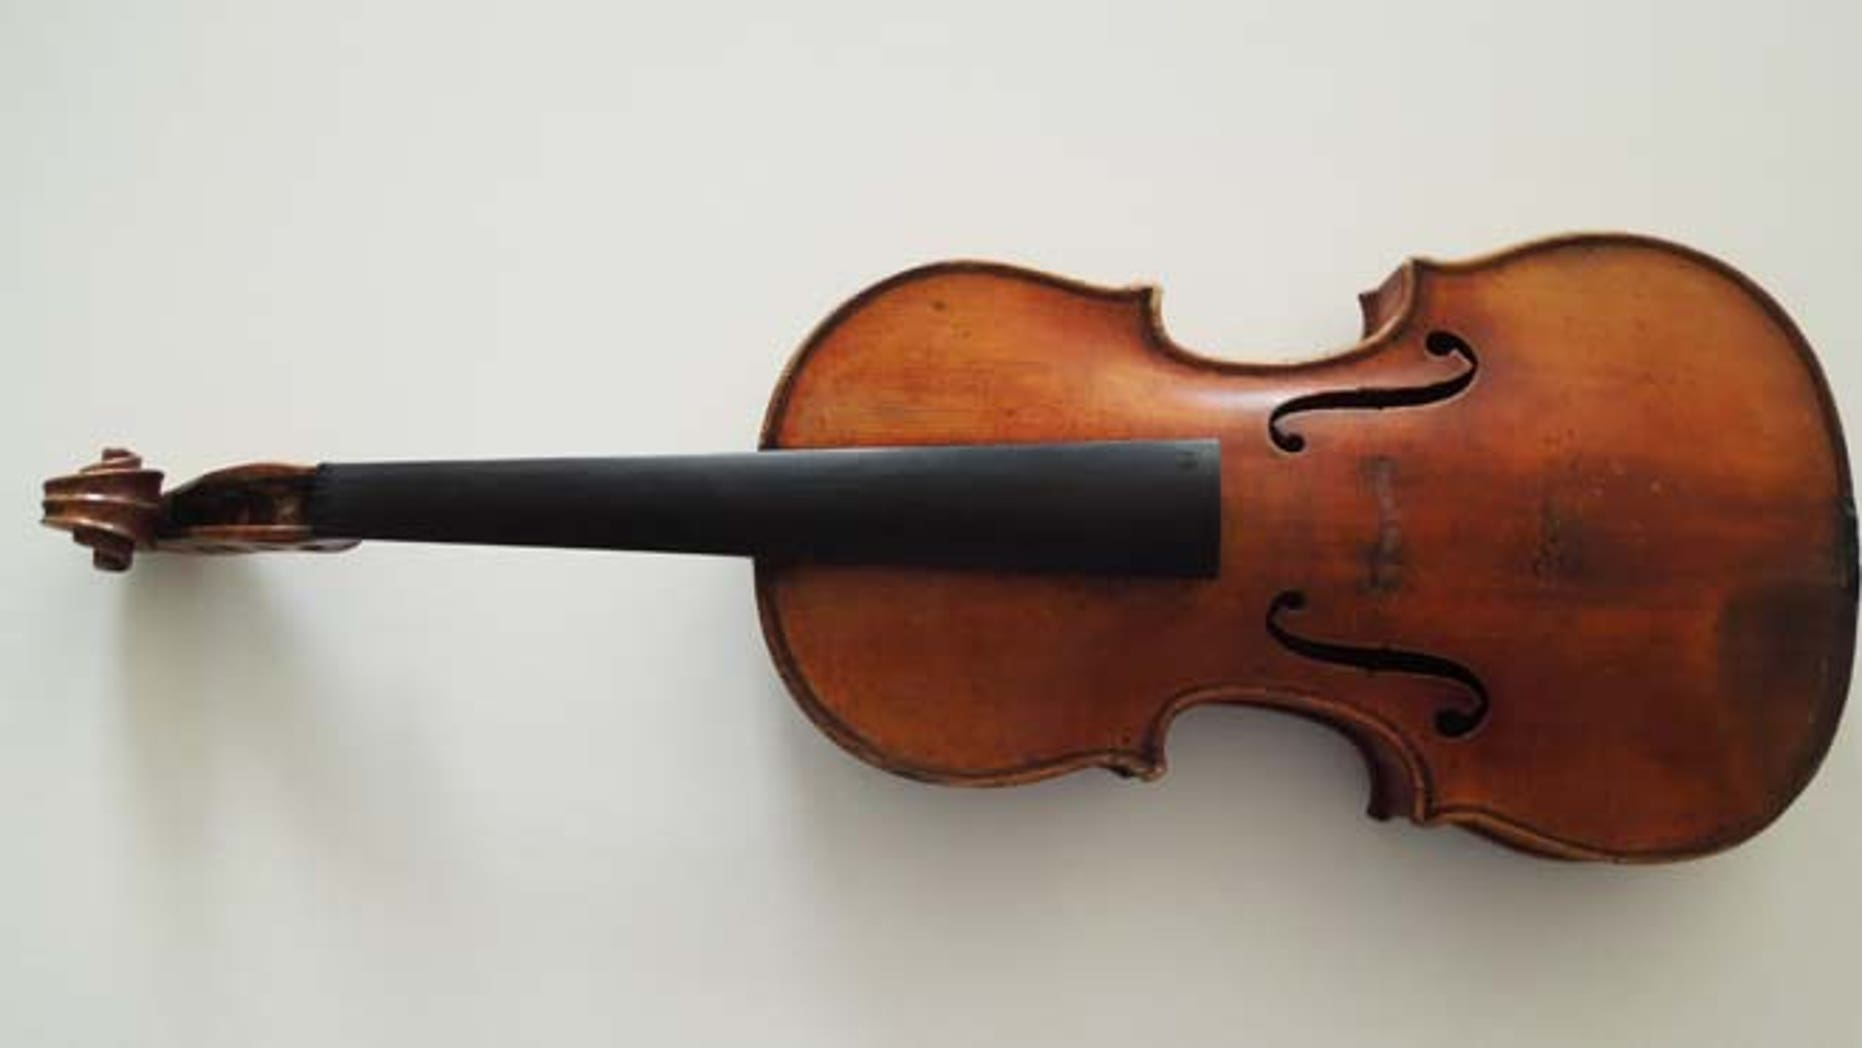 This handout photo provided by the FBI New York shows The Ames Stradivarius which was recovered by the FBI in June. Renowned violinist Roman Totenberg left his beloved Stradivarius in his office while greeting well-wishers after a concert in 1980. When he returned, it was gone.